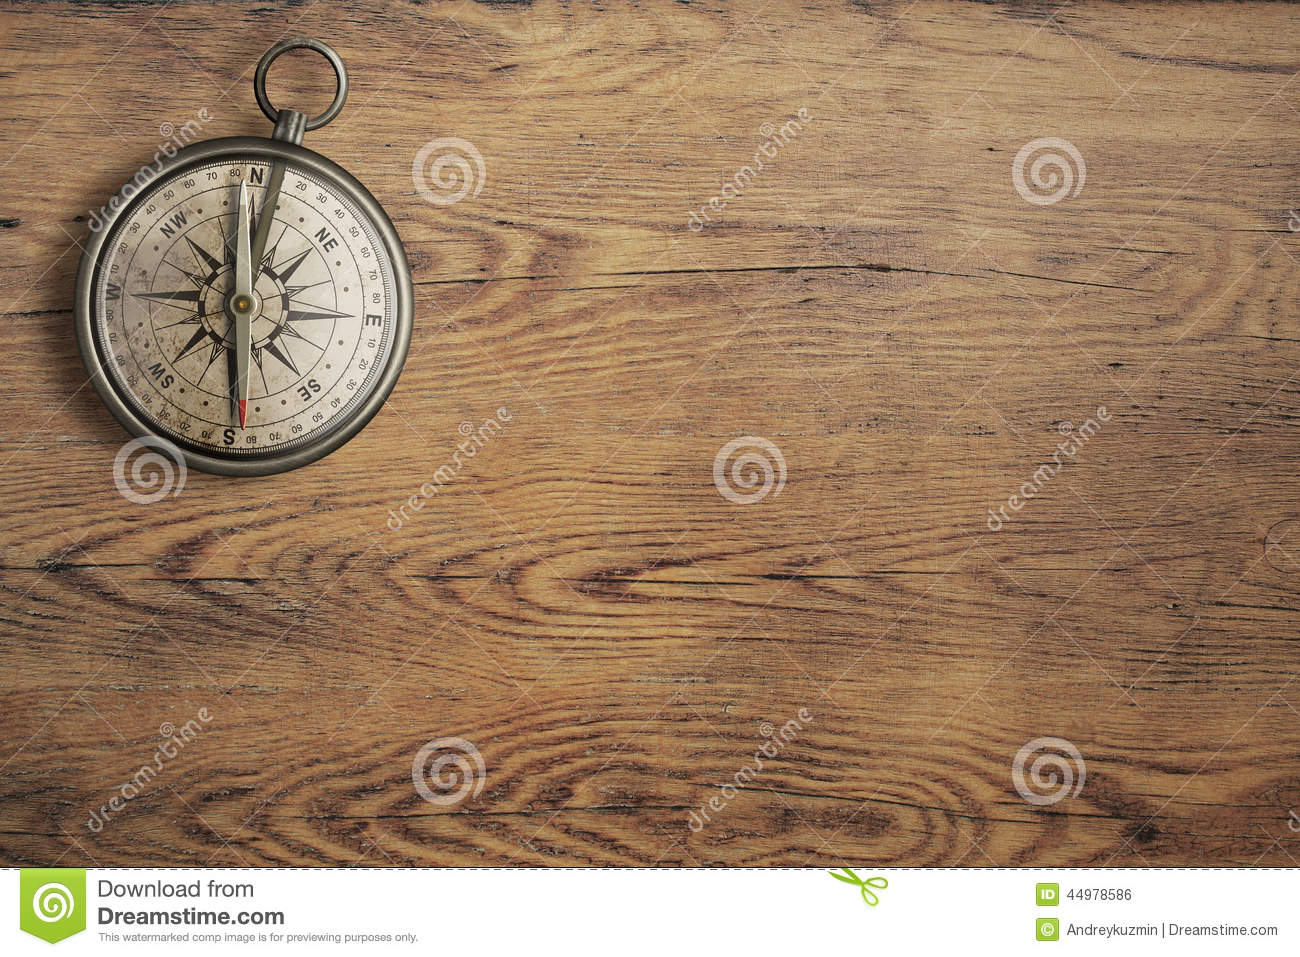 Wood table top view wooden table top view photo - Compass Old Table Top View Vintage Wooden